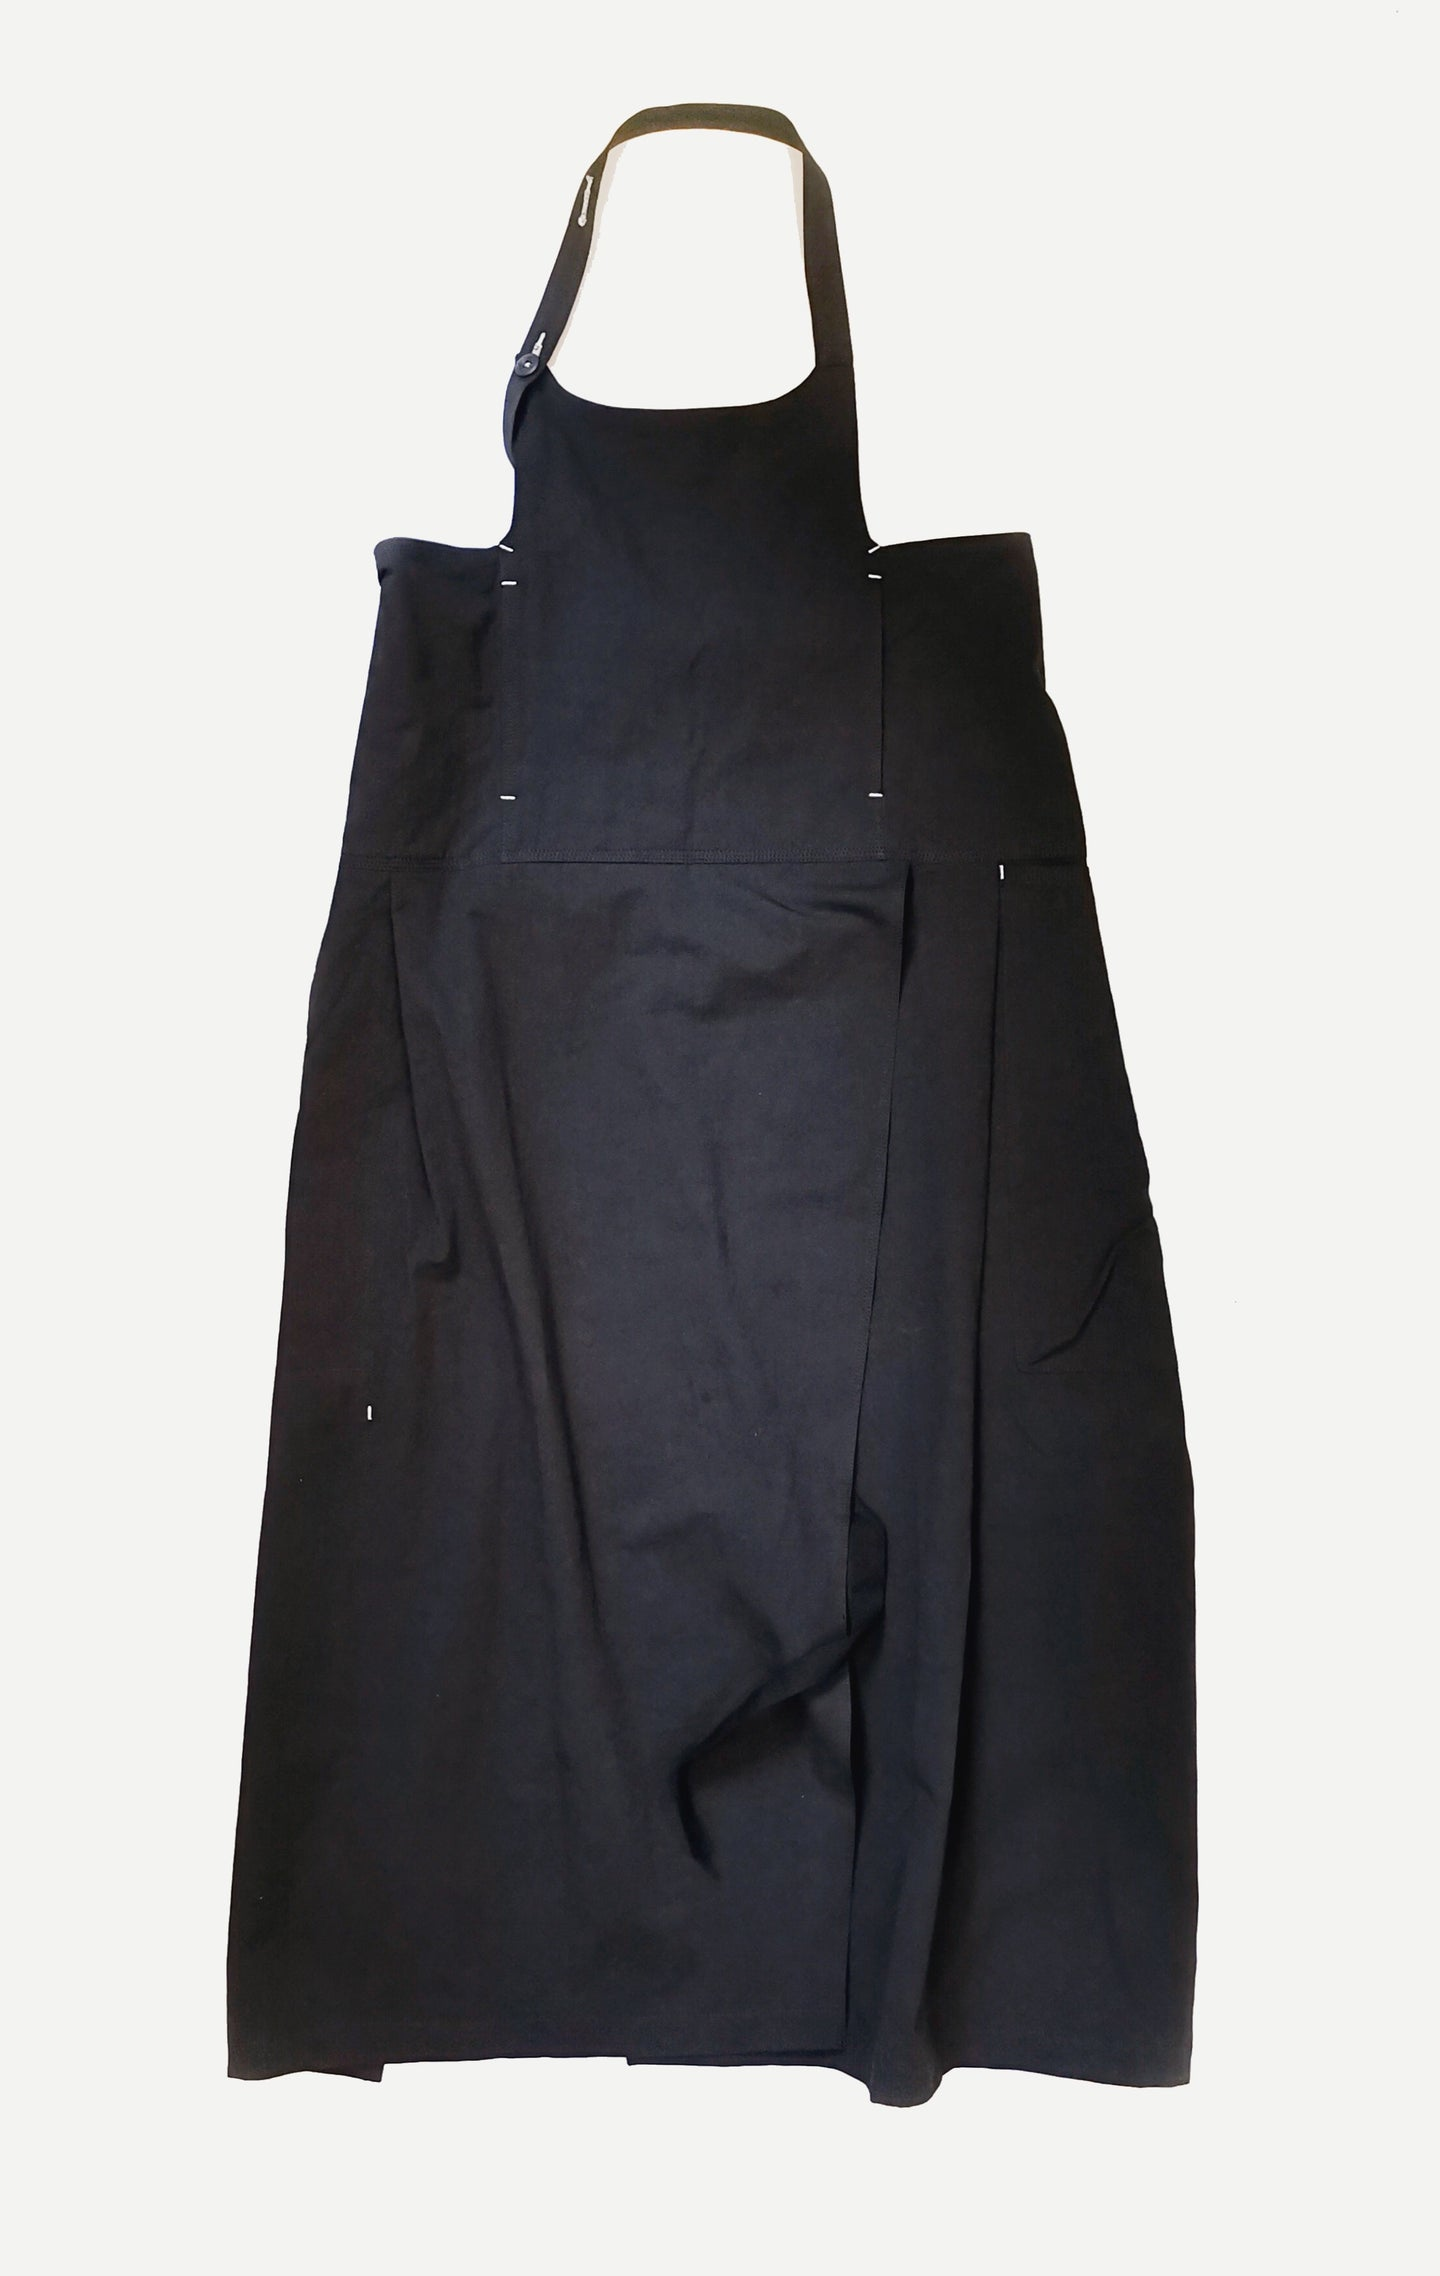 OVER APRON